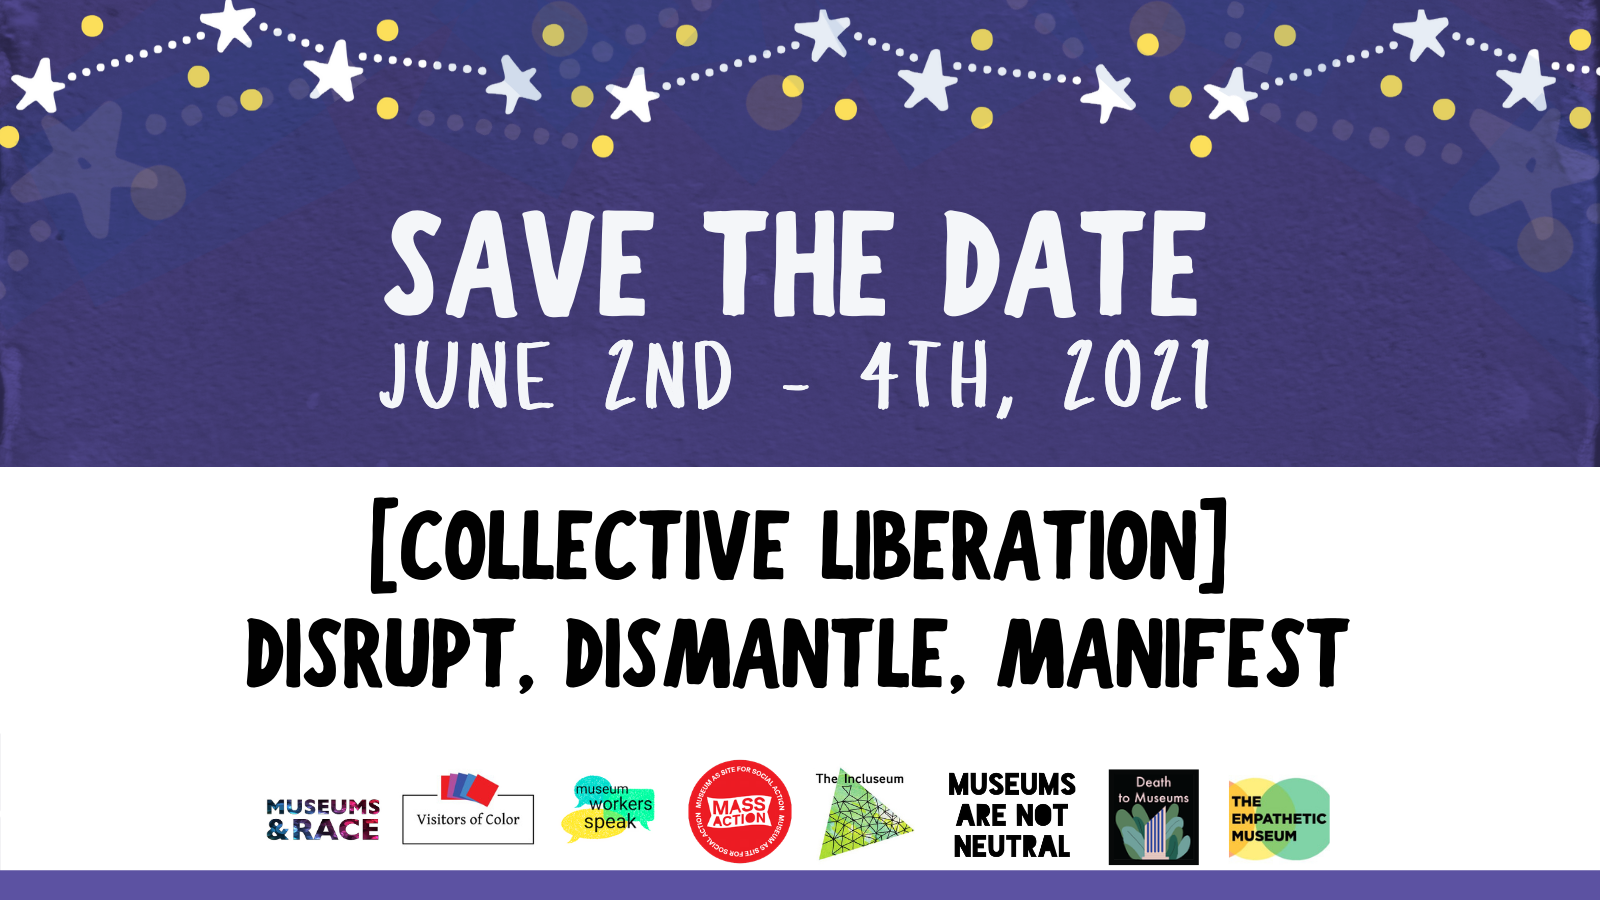 The top half of this image is deep purple with stars arranged in a constellation-like pattern at the very top. Below the stars, the text reads Save the Date, with a subheading beneath that reads June 2nd-4th, 2021. The bottom half of the image has a white background. The text reads [Collective Liberation] Disrupt and Manifest. At the bottom of the image there are eight logos lined up. Left to right, they are Museums & Race, Visitors of Color, Museum Workers Speak, MASS Action, The Incluseum, Museums are Not Neutral, Death to Museums, and The Empathetic Museum.